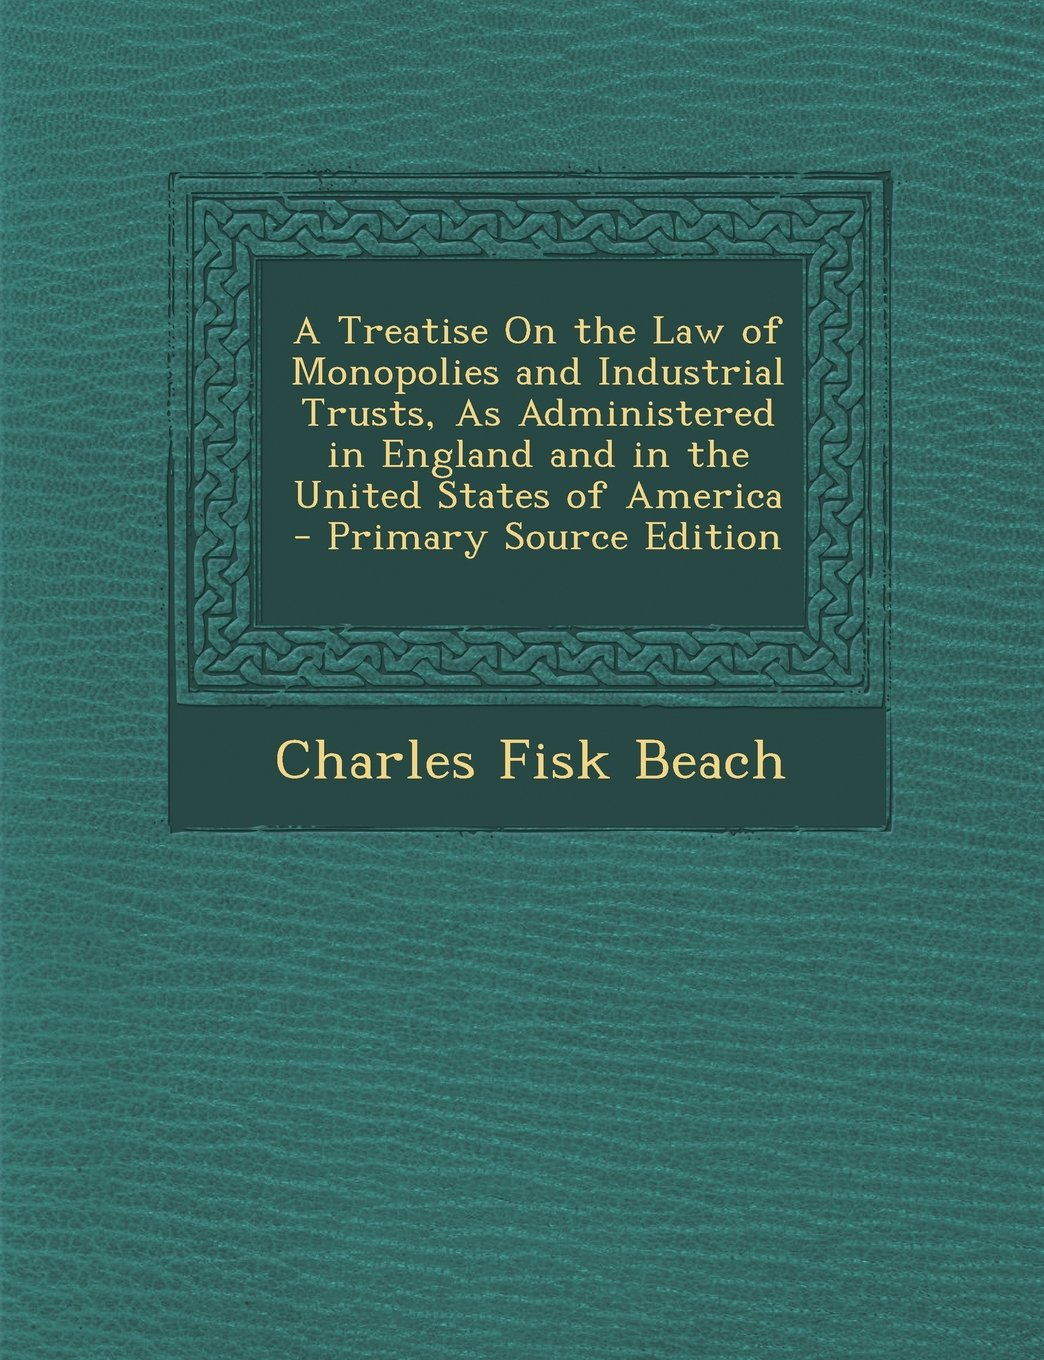 Download A Treatise on the Law of Monopolies and Industrial Trusts, as Administered in England and in the United States of America - Primary Source Edition PDF